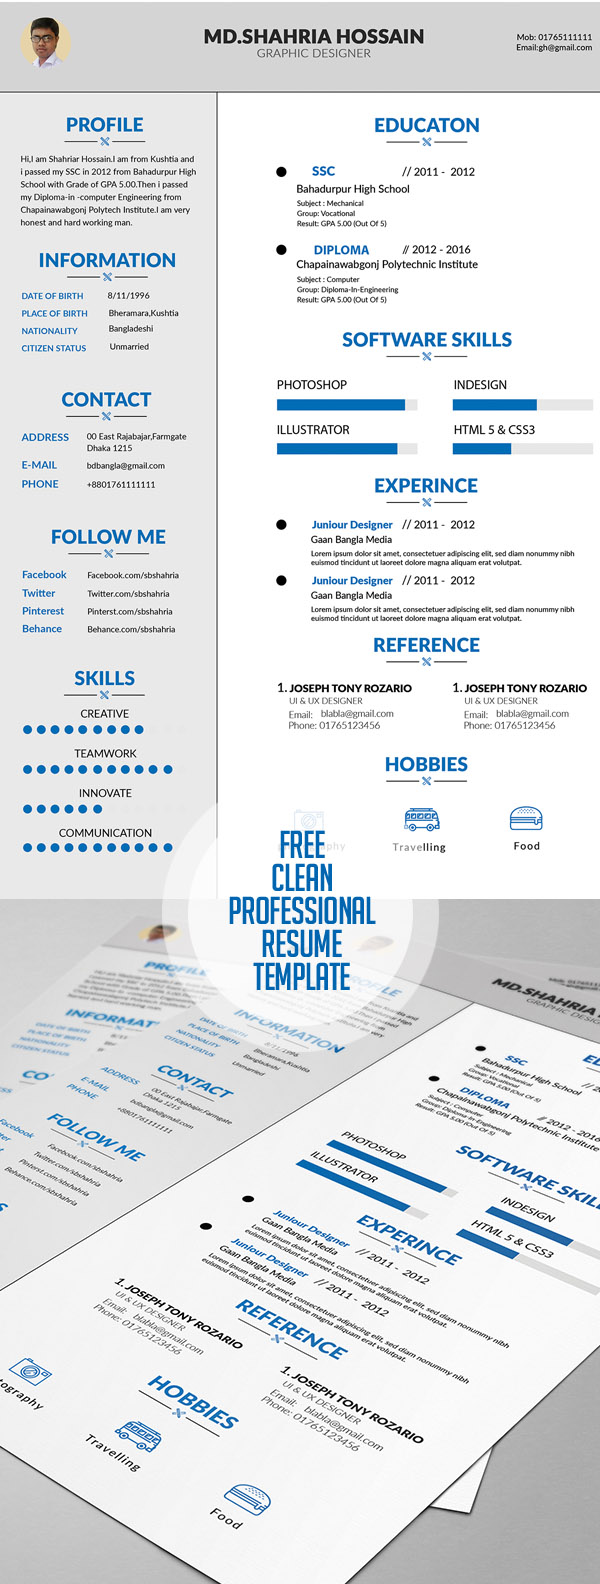 20 Free Cv Resume Templates 2017 With Cover Letter Portfolio